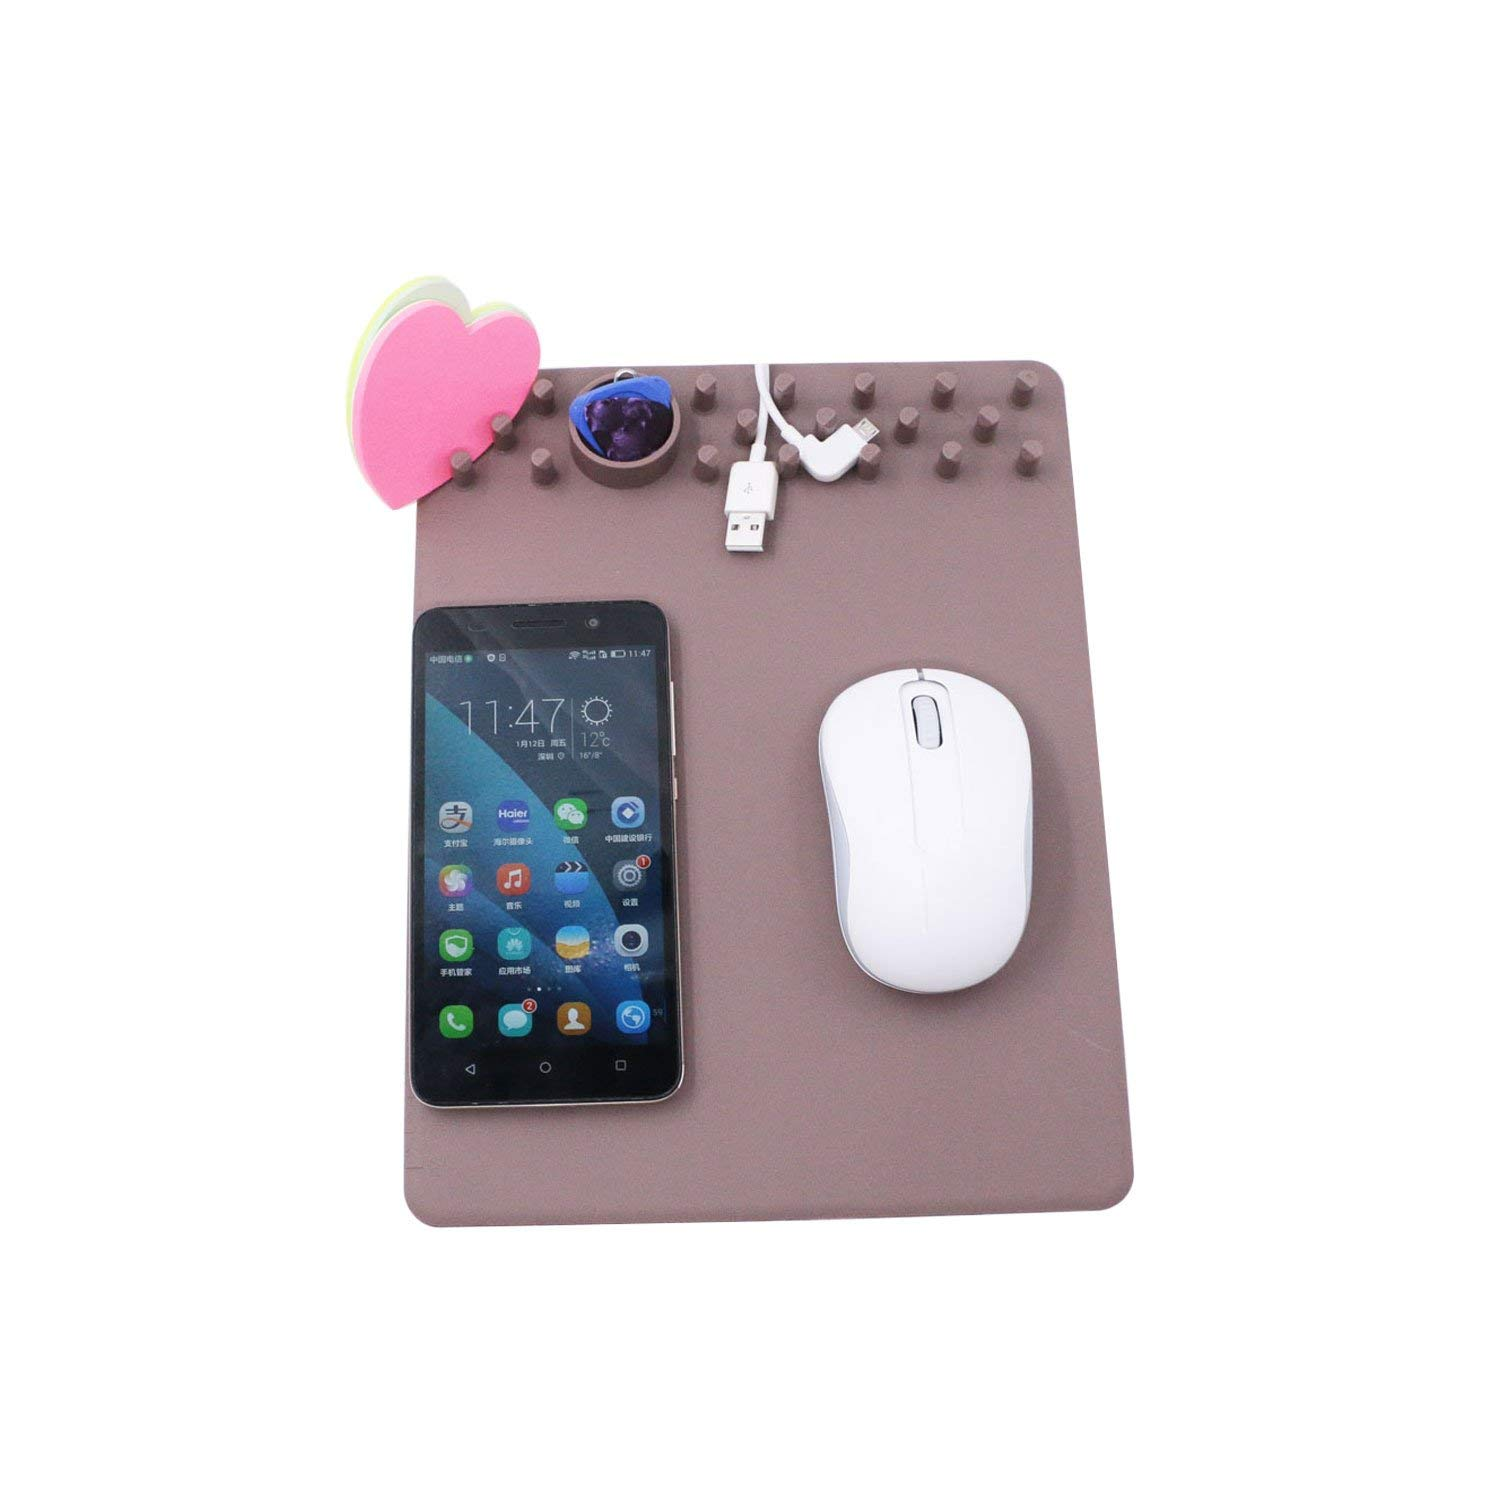 Wireless Mouse Pad Charger,5W QI Wireless Charging Mouse Pad for iPhone X,iPhone 8 8 Plus, Samsung Note 8,S8,S7,S6/Edge,Nexus 5/6/7 (light brown)